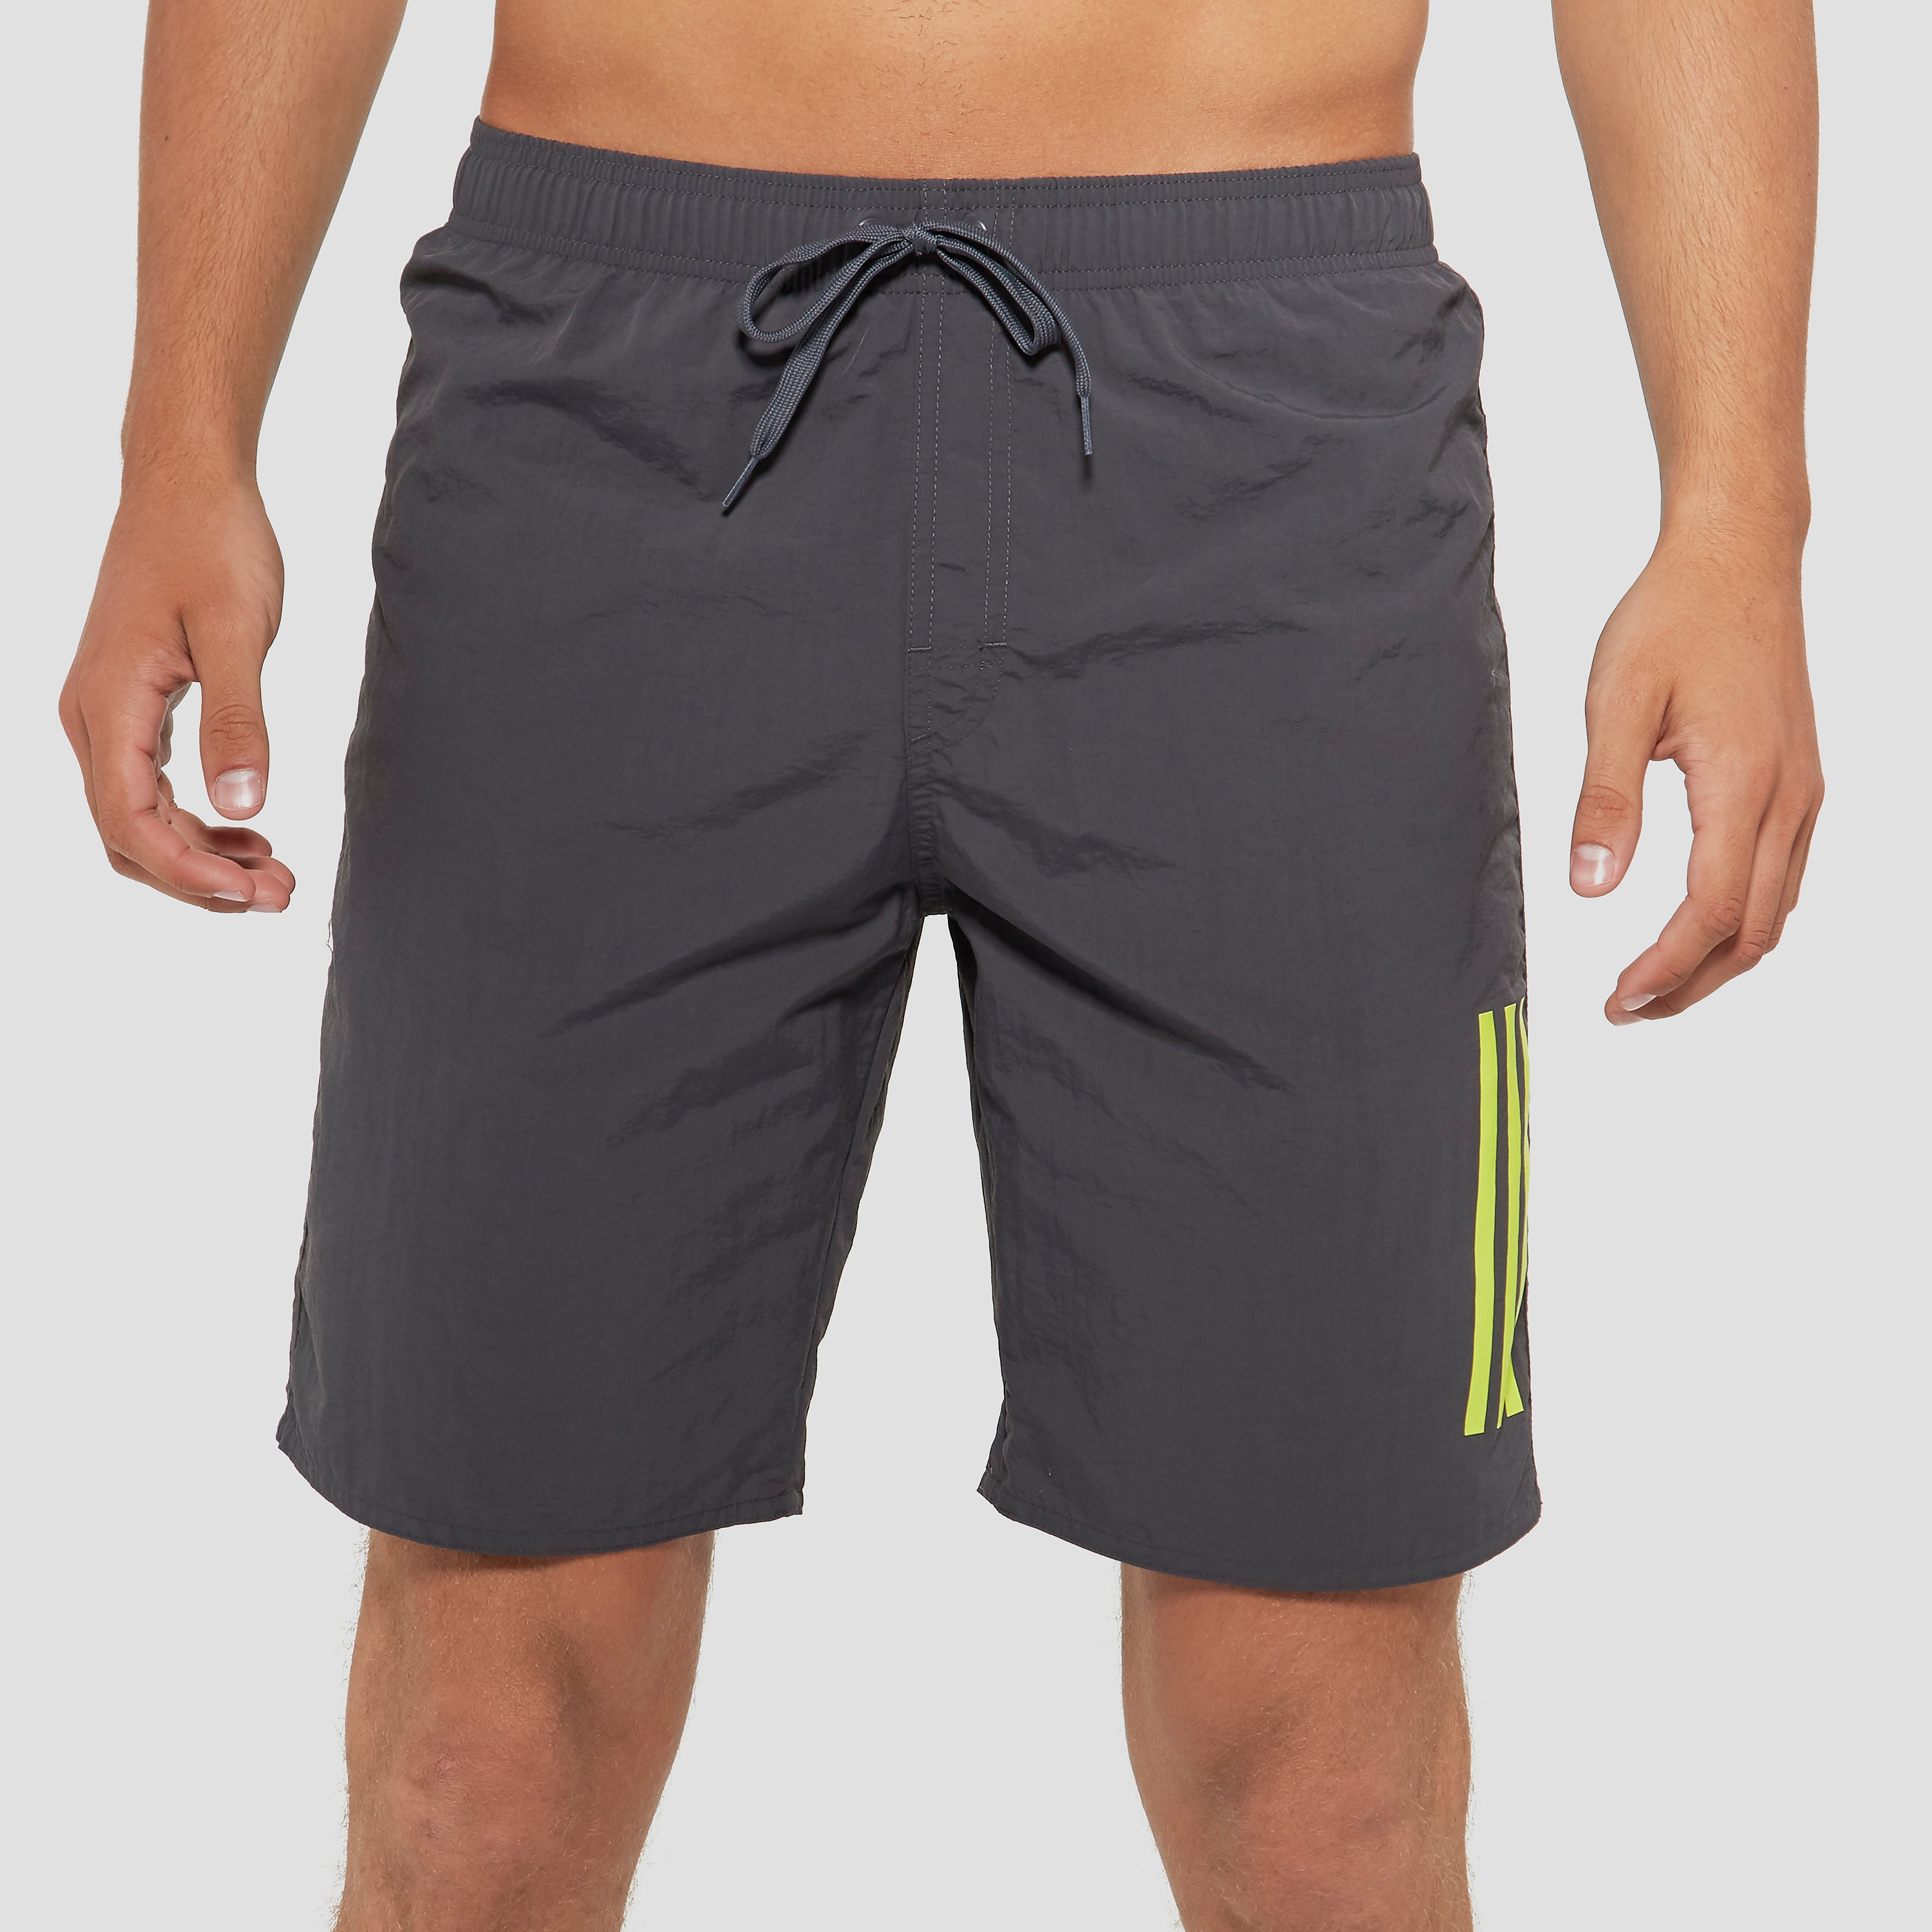 ADIDAS 3-STRIPES BOARDSHORT ZWART HEREN